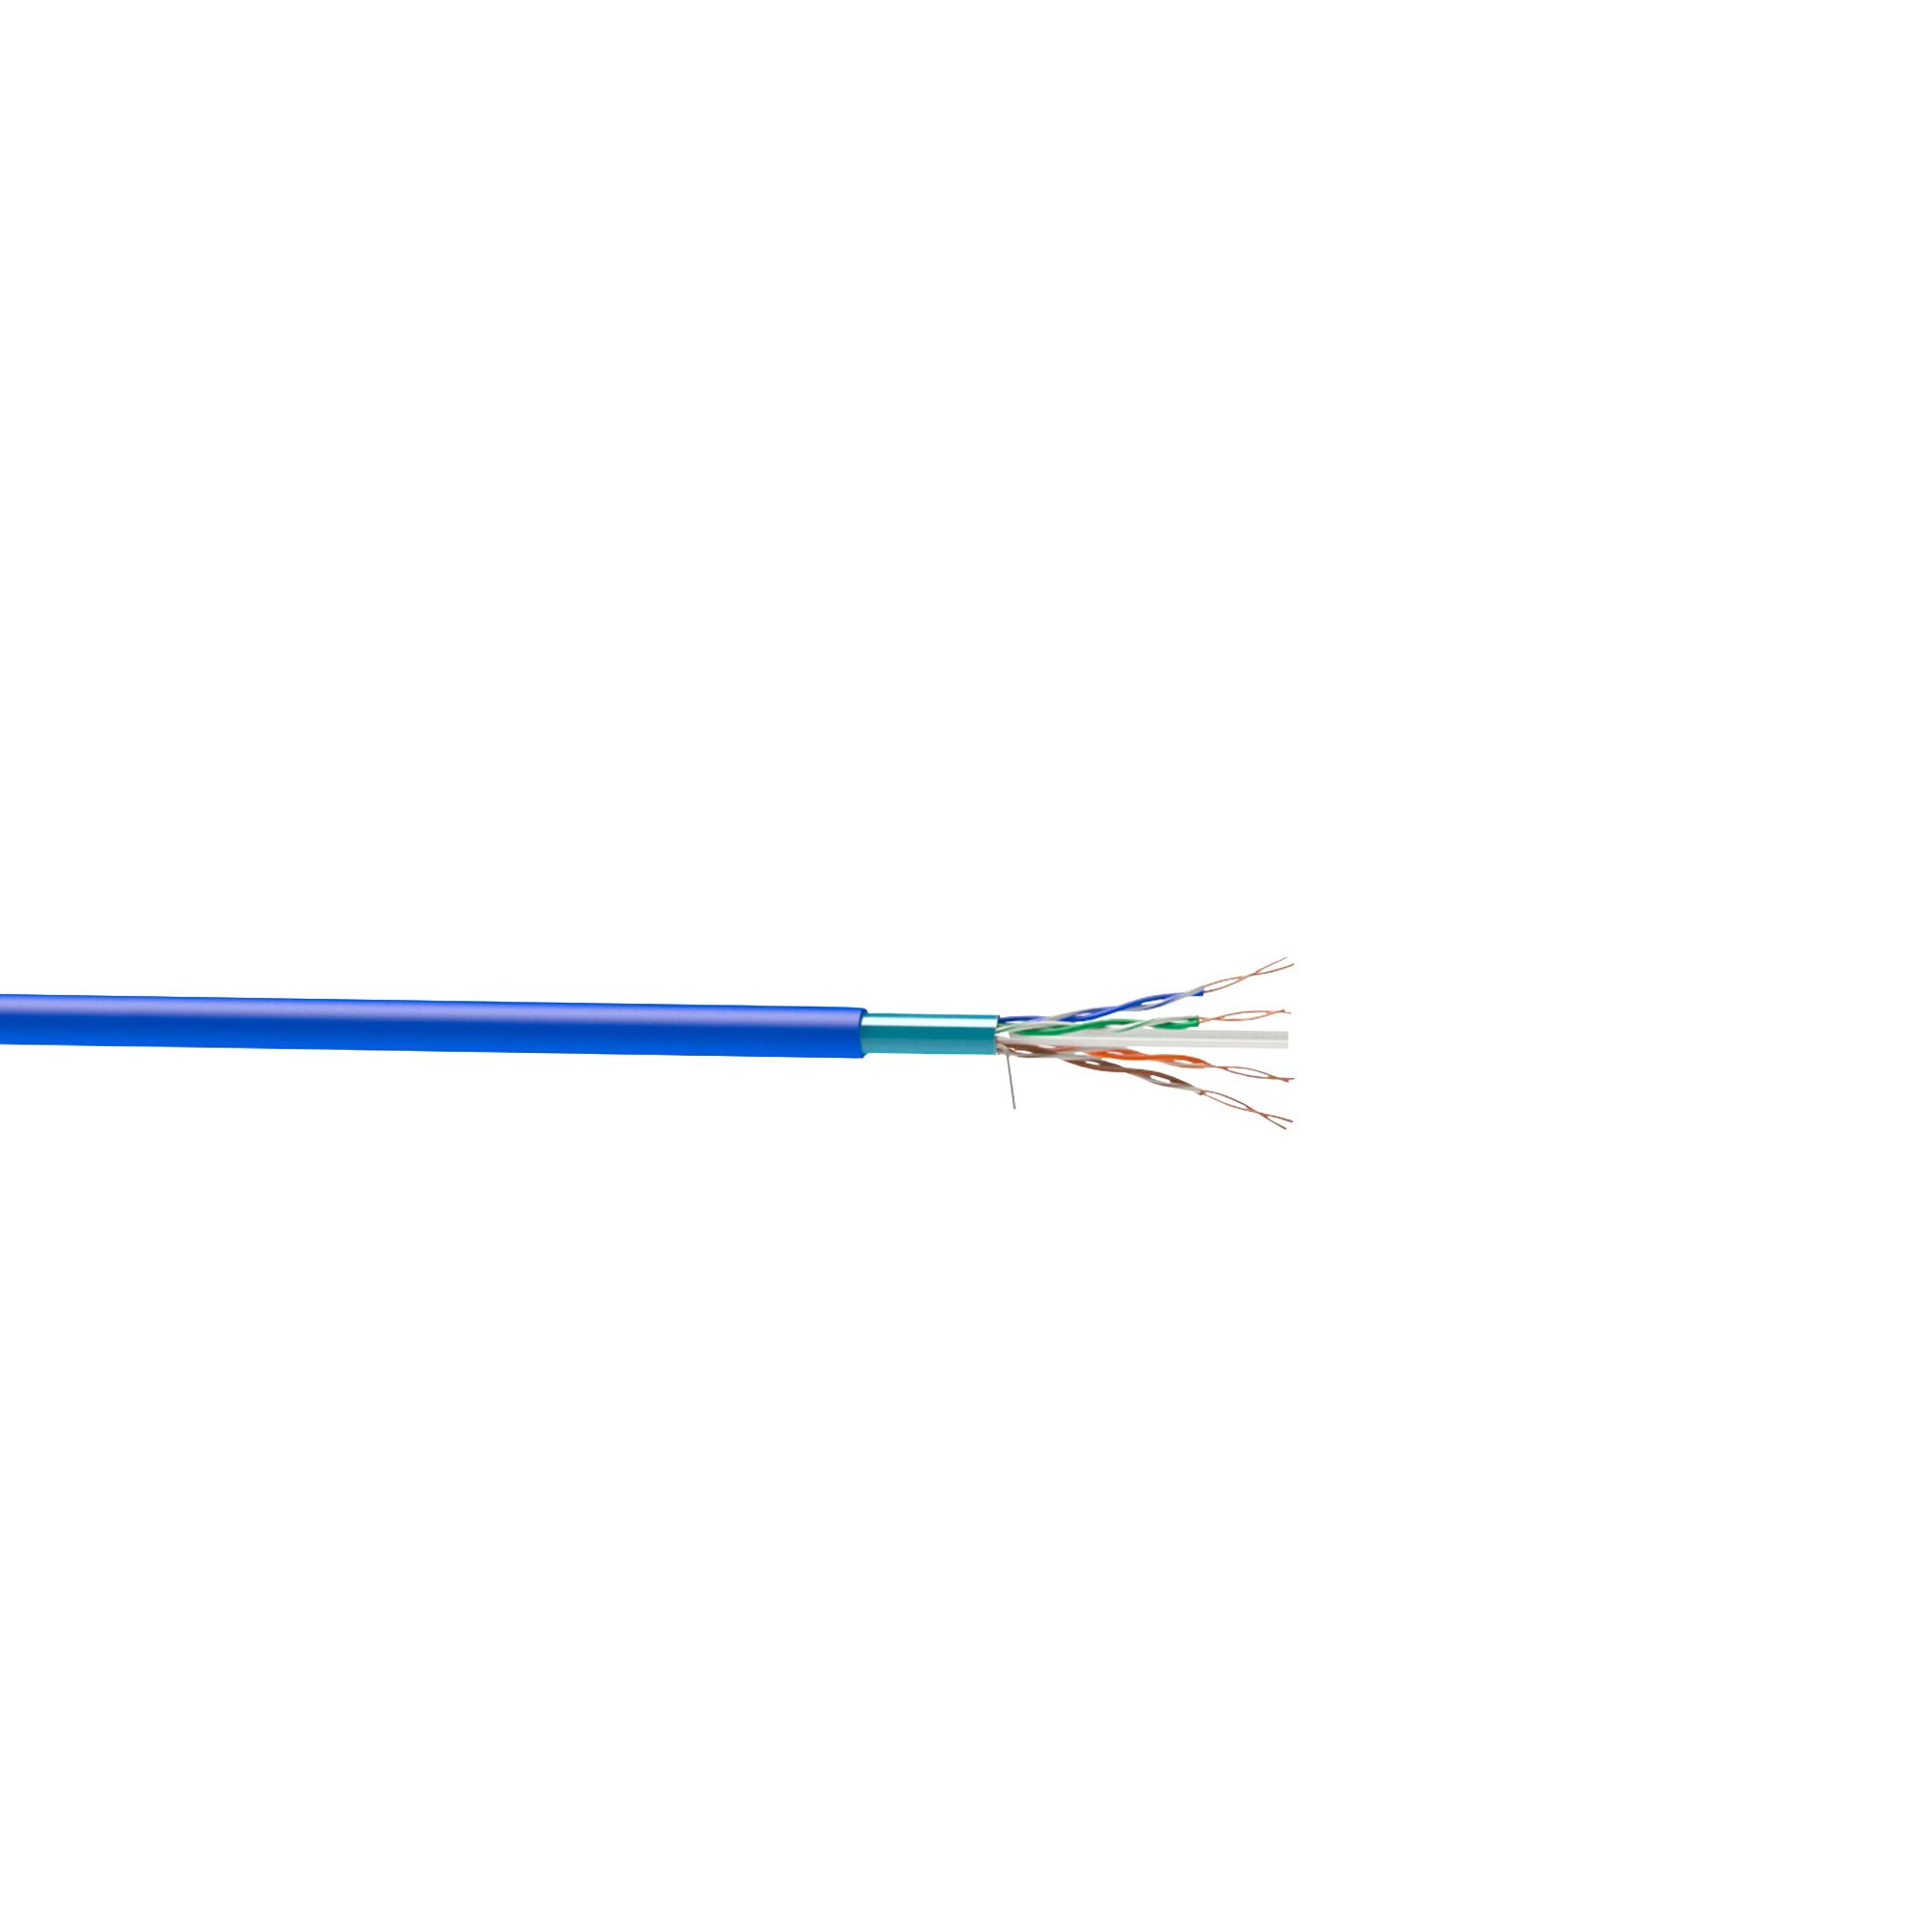 Panel Data Cable Wiring Standards Diy Home Work Rack Cat 5 Wiring